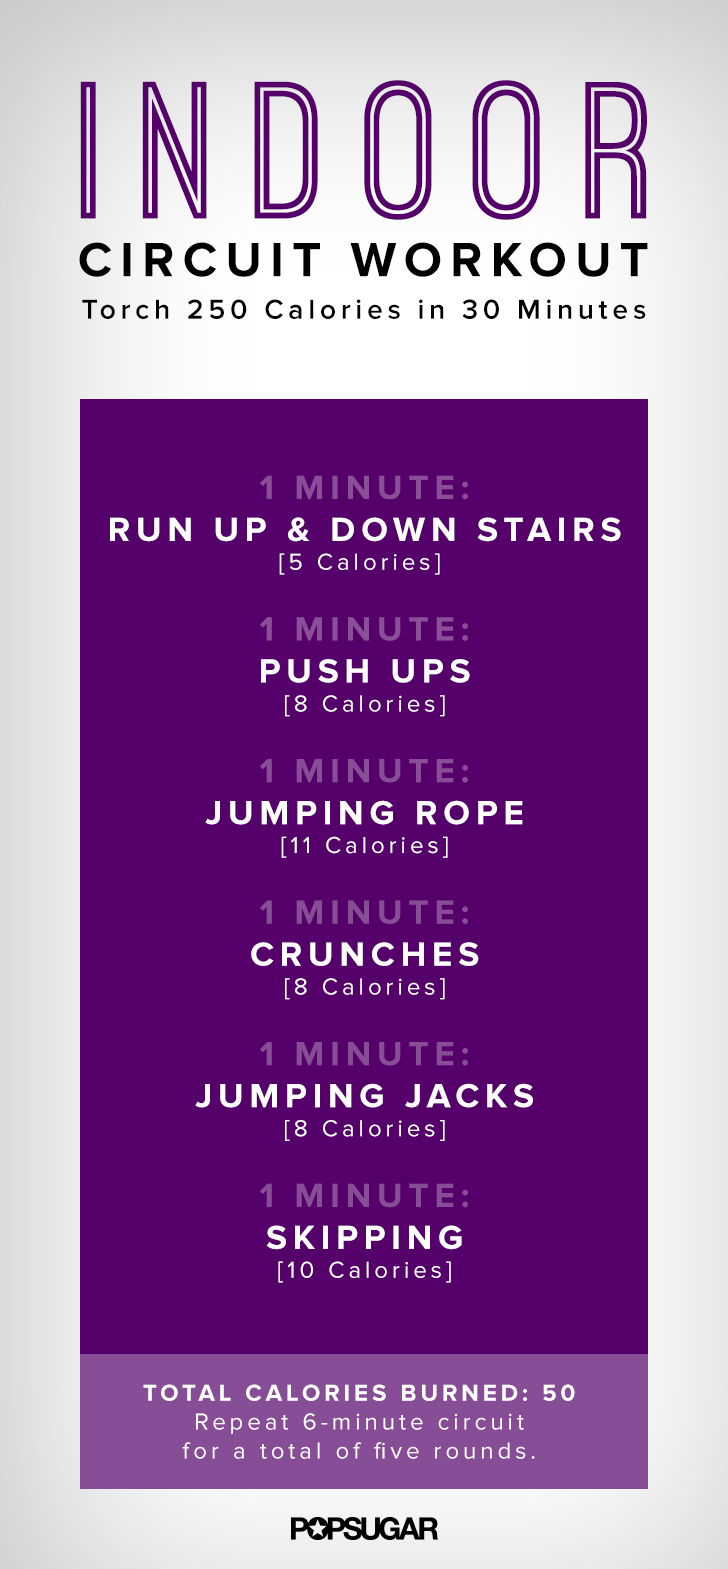 IndoorCircuitWorkout